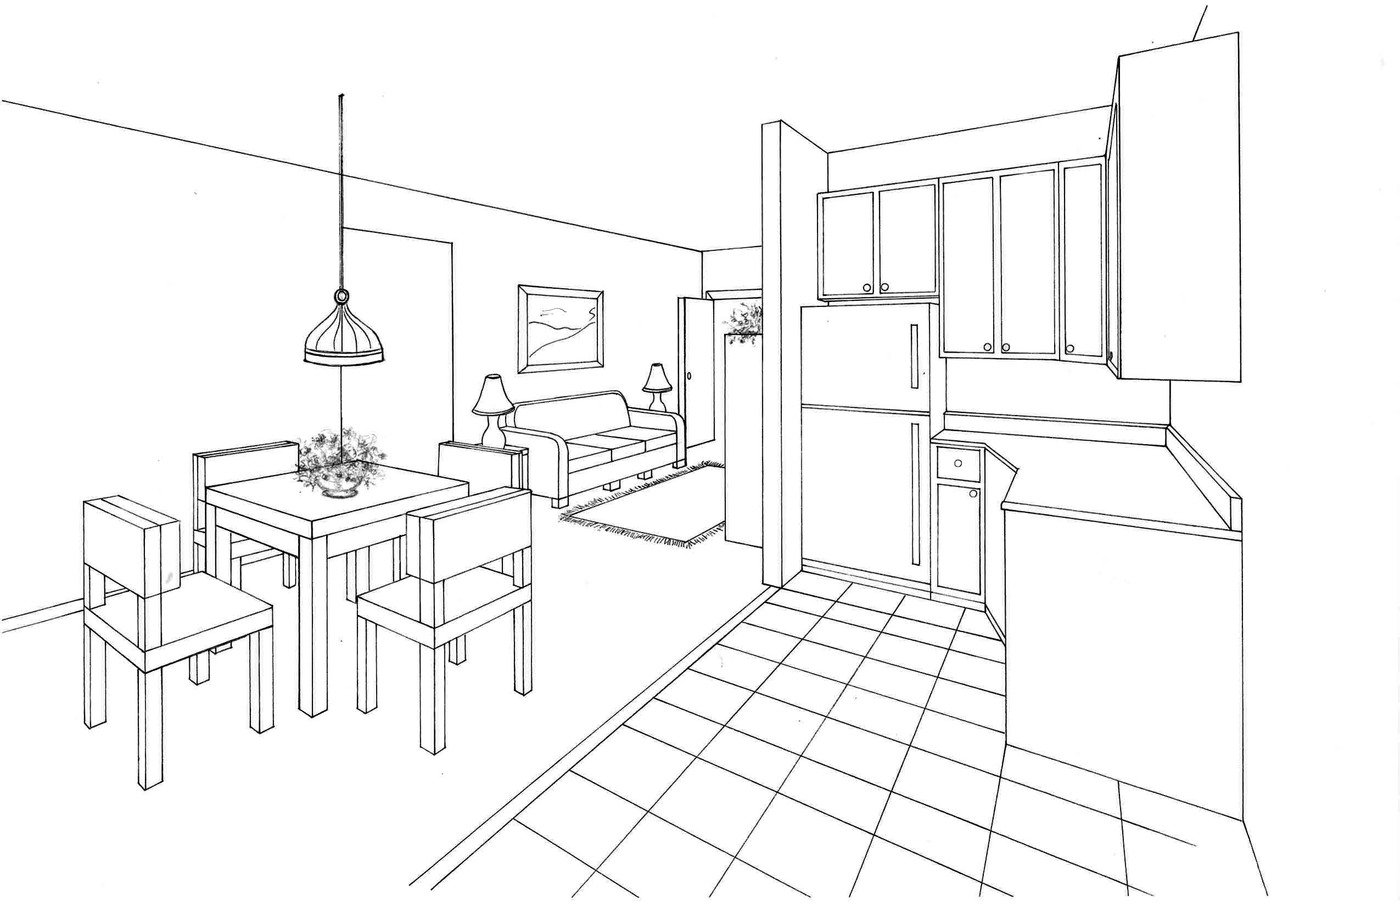 Floor and Elevation Renderings by Laurie Davis at Coroflot.com